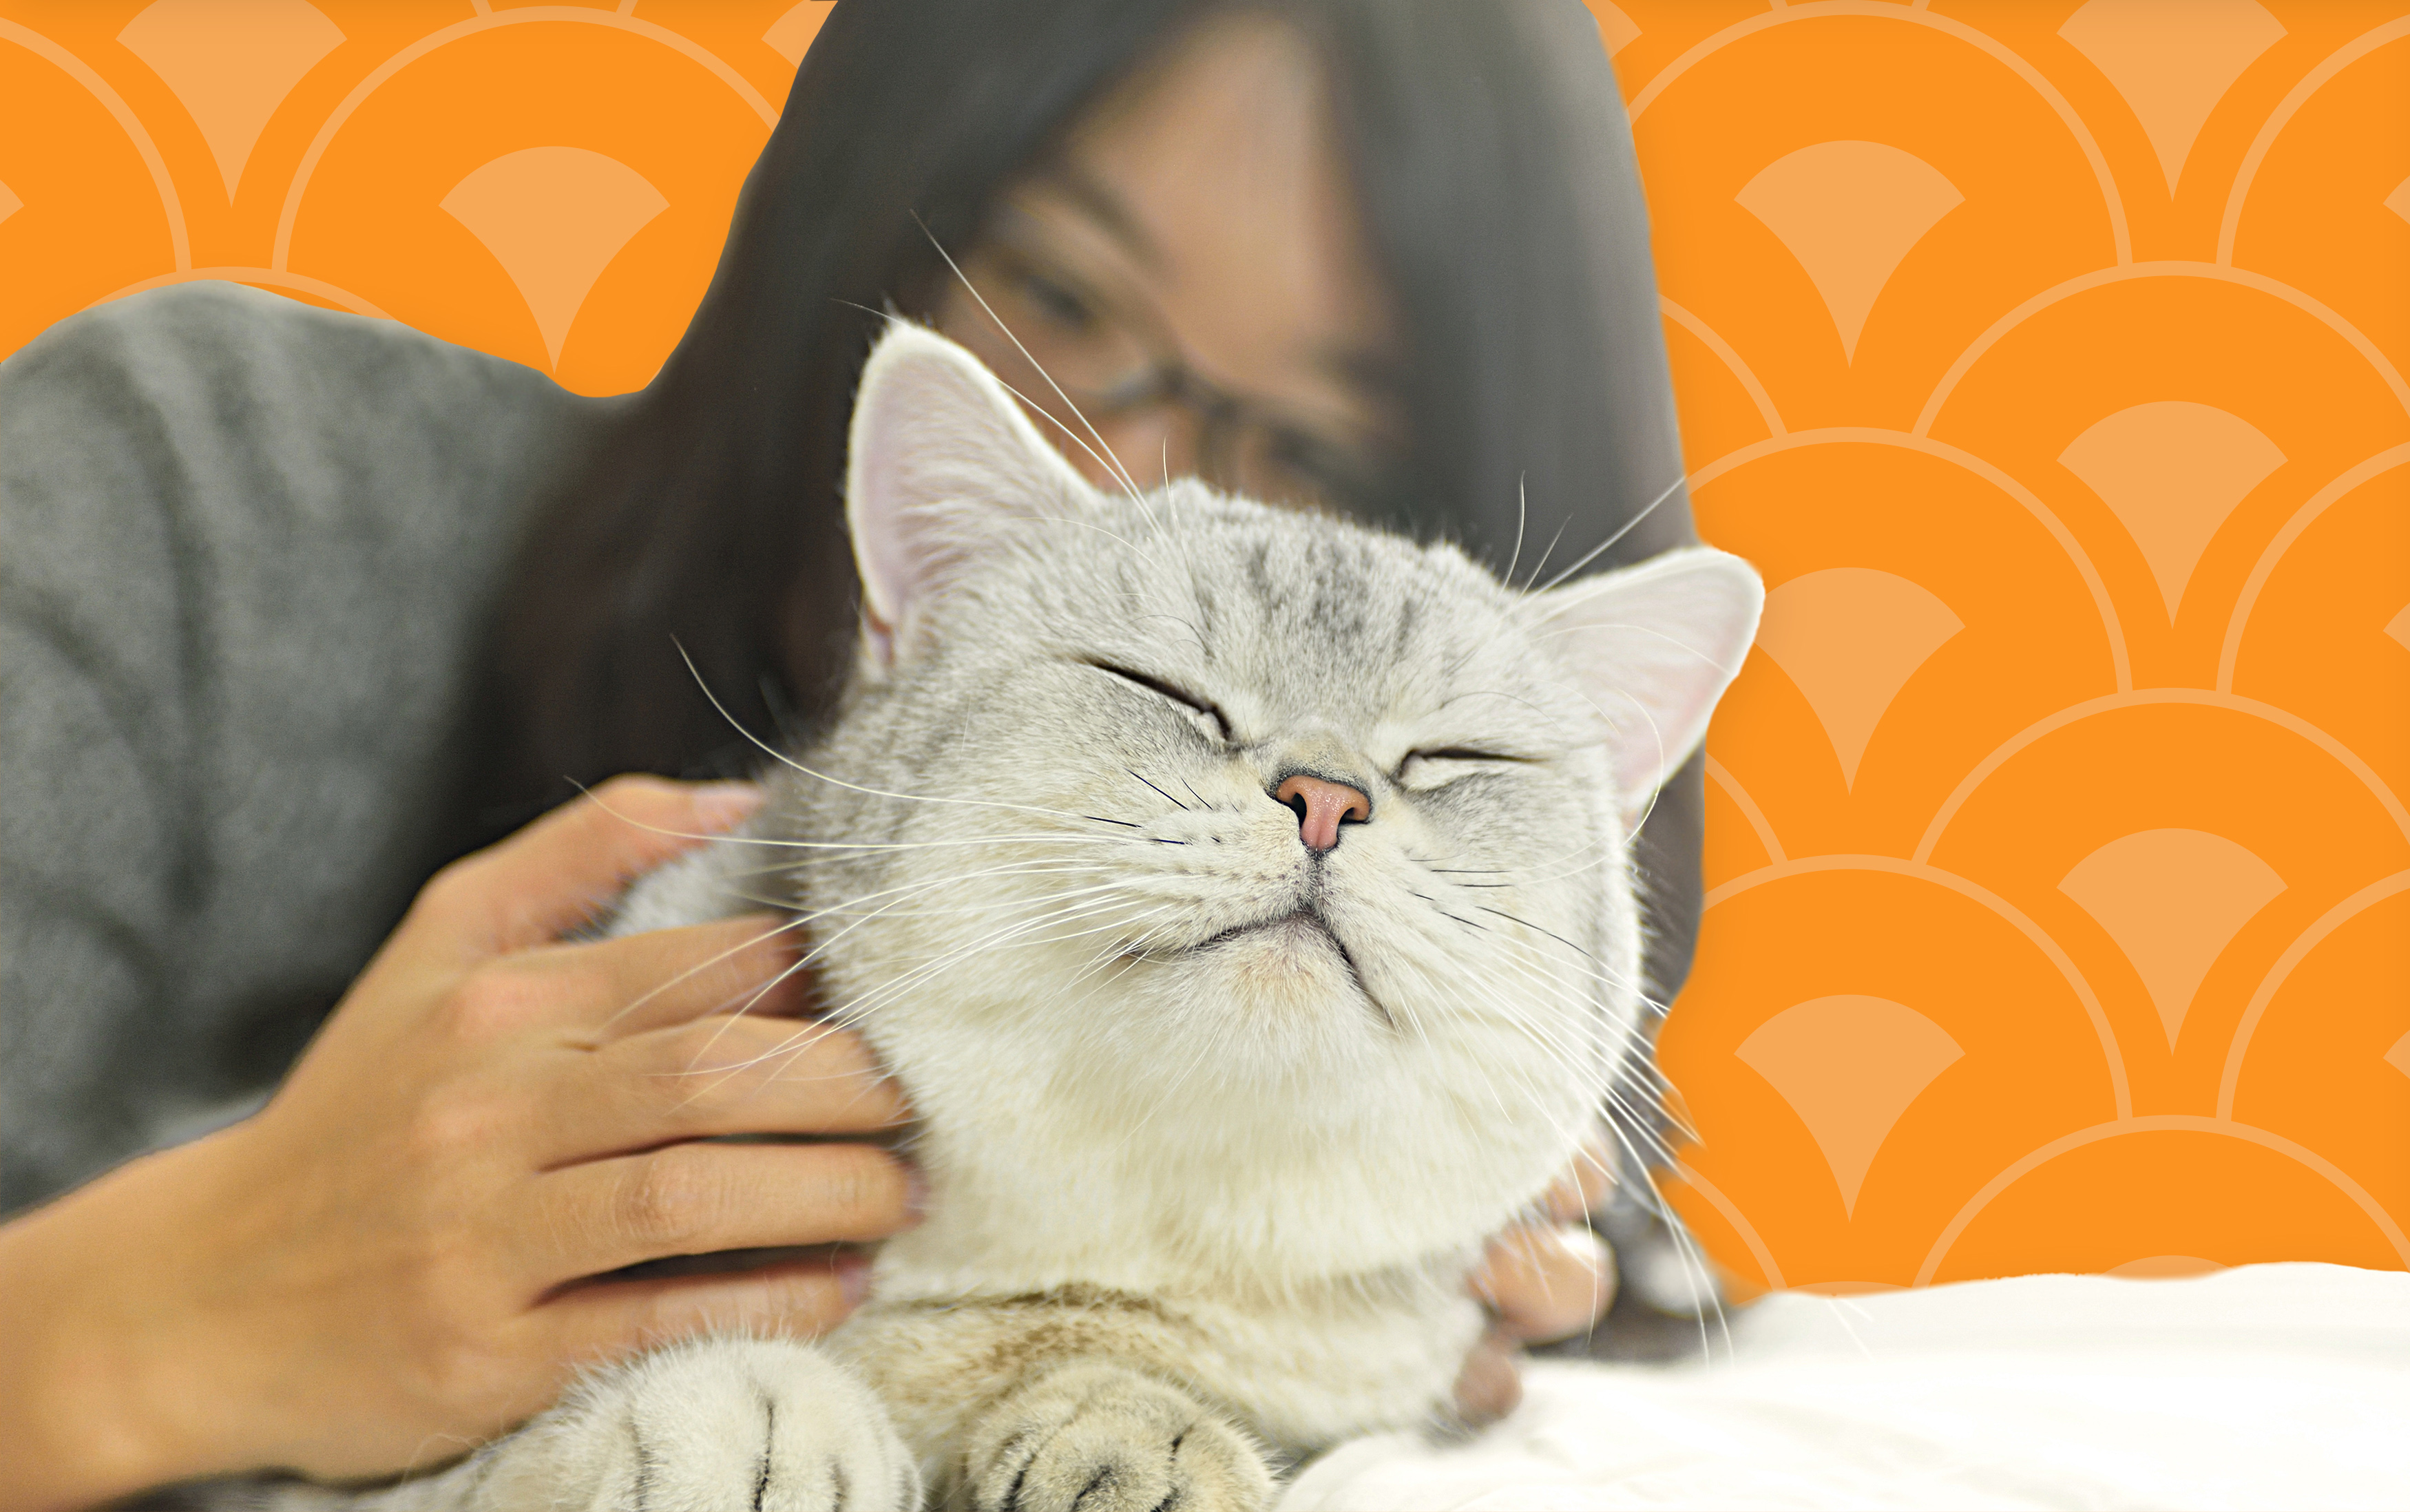 woman cuddling white and gray cat against orange background